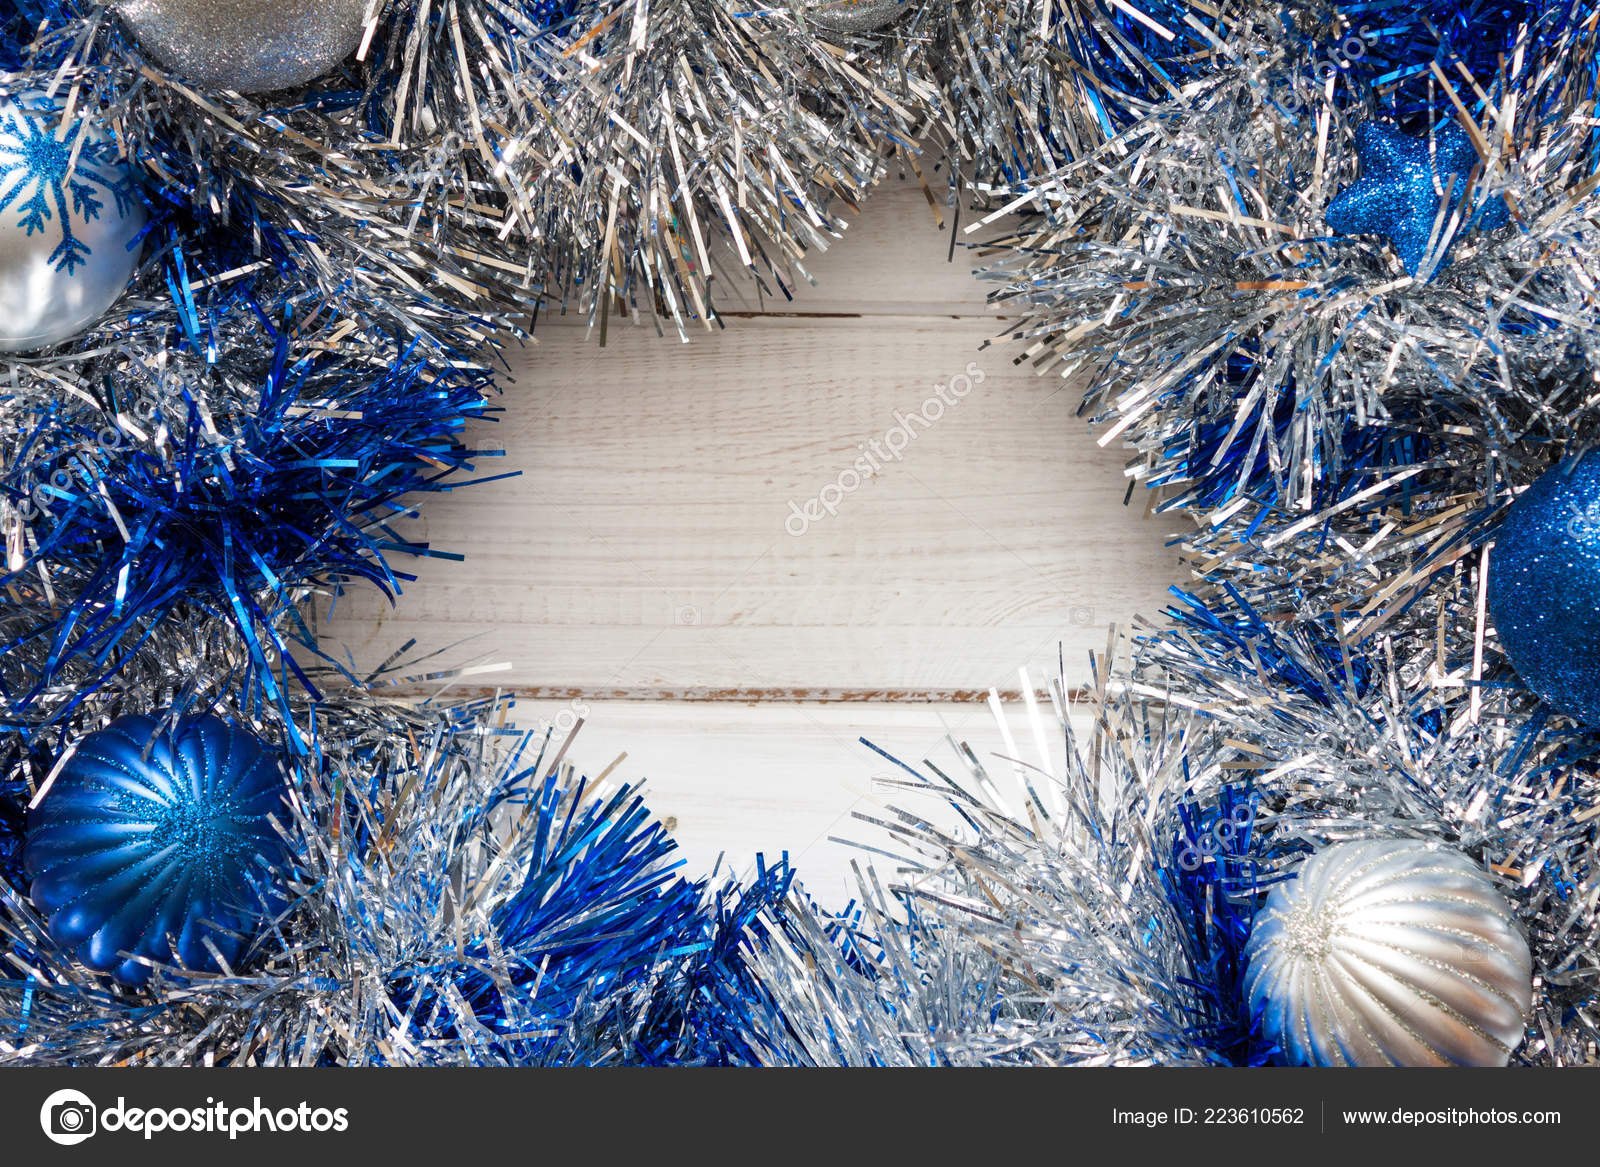 Blue and silver Christmas wreath with decorations on white wooden background.– stock image